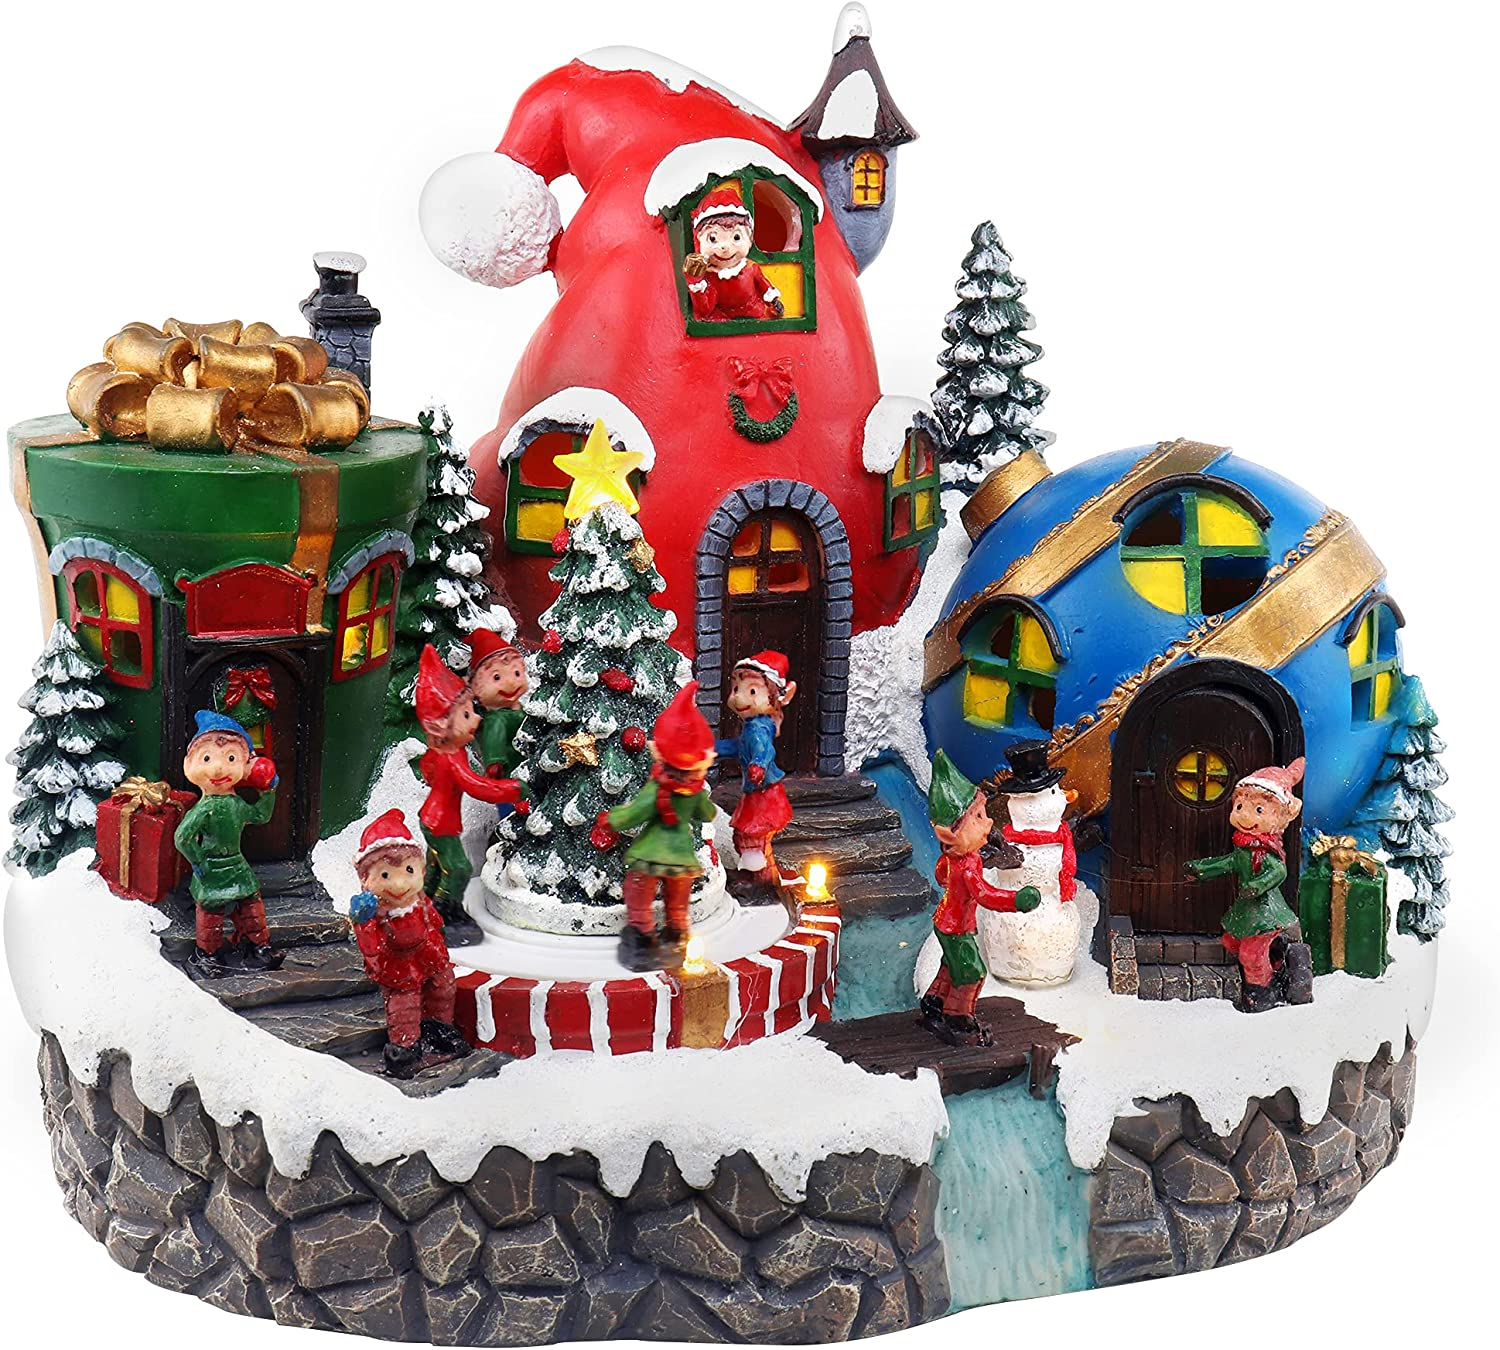 Elves Christmas Village | Animated Pre-lit Musical Santa's Helpers Snow Village | North Pole Gift and Decor Elf Town | Perfect addition to your Christmas Indoor Decorations & Indoor Display